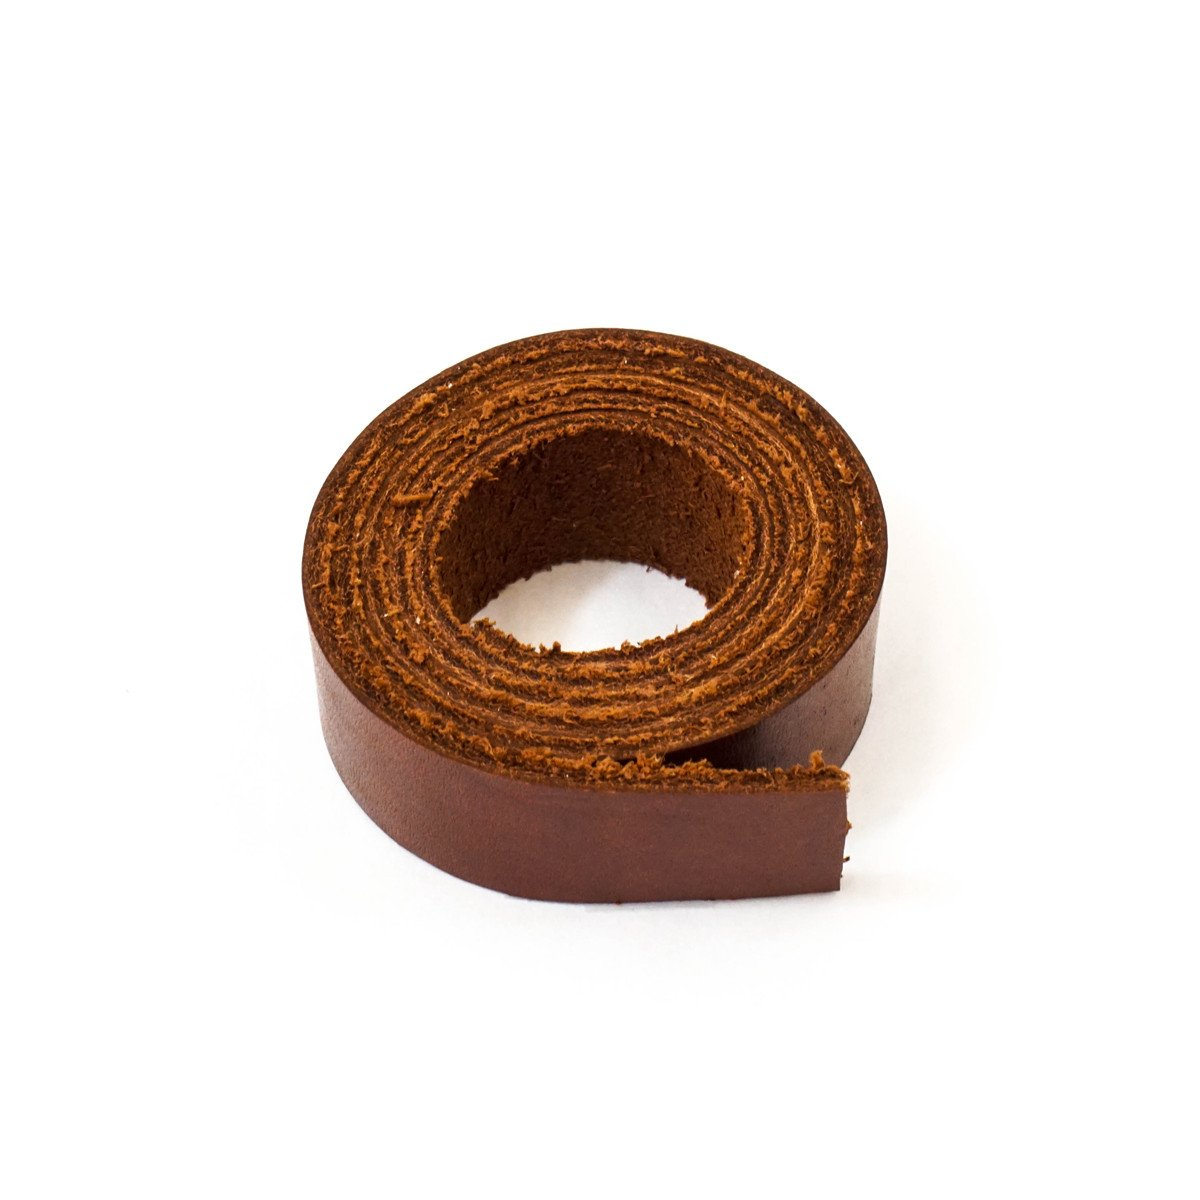 100-6408 Purse Strap, English Chestnut, 3/4 x 64